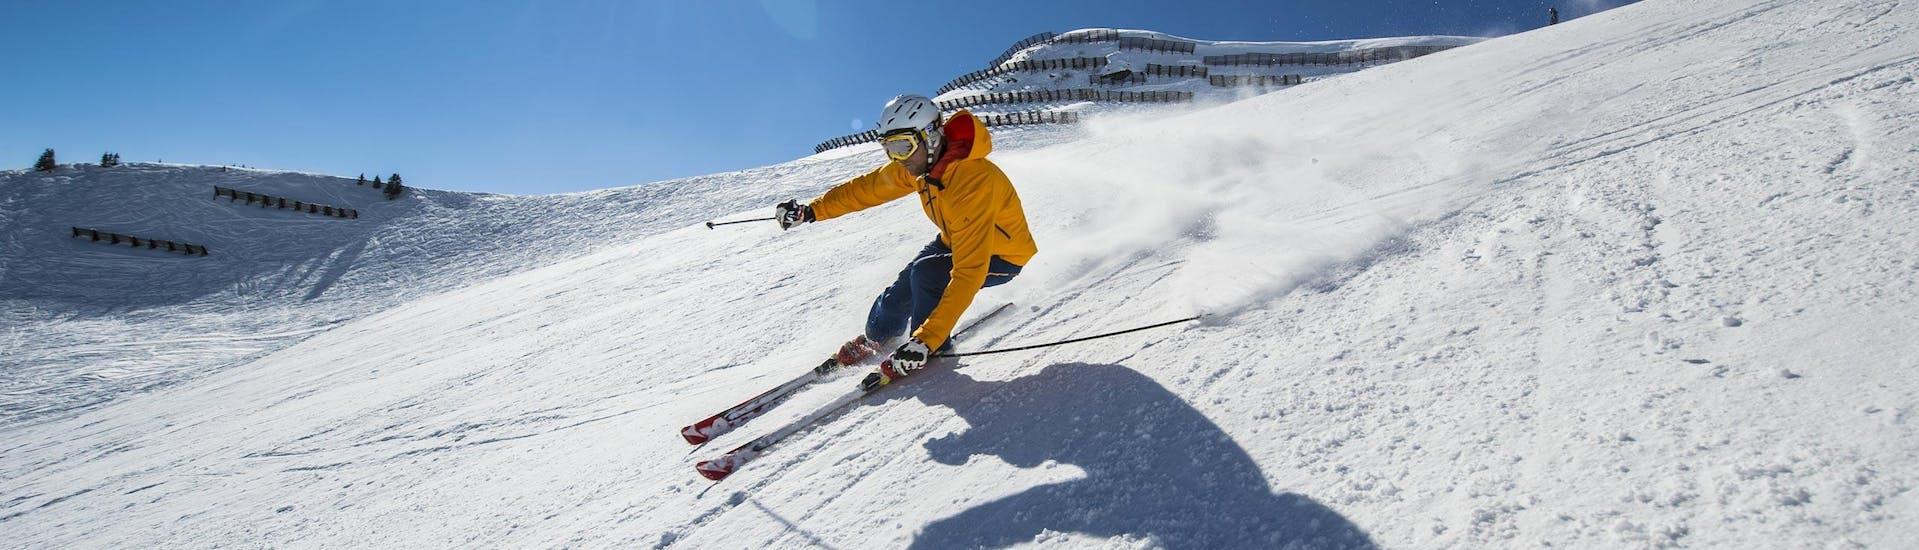 Private Ski Lessons for Adults of All Levels: A skier is skiing down a sunny ski slope while participating in an activity offered by ESF Courchevel Village.